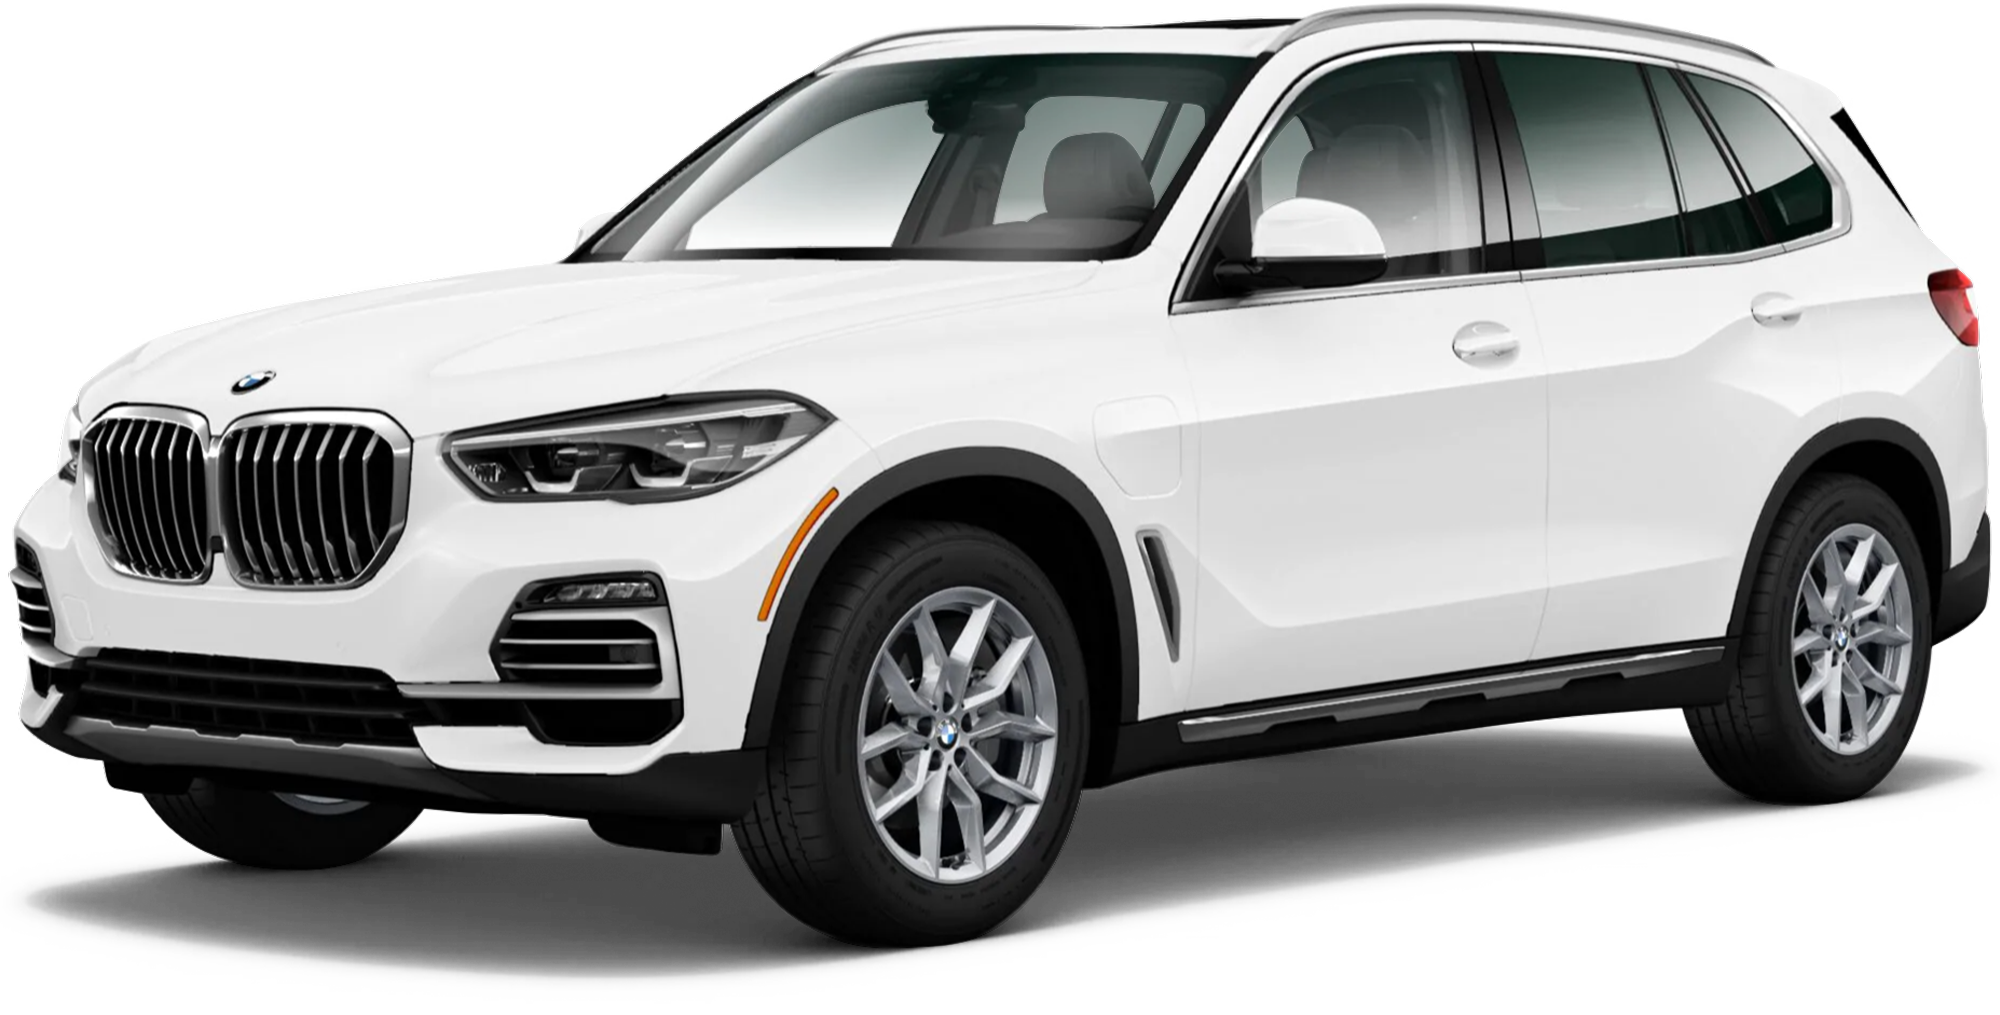 2021 BMW X5 PHEV Incentives, Specials & Offers in Kingsport TN